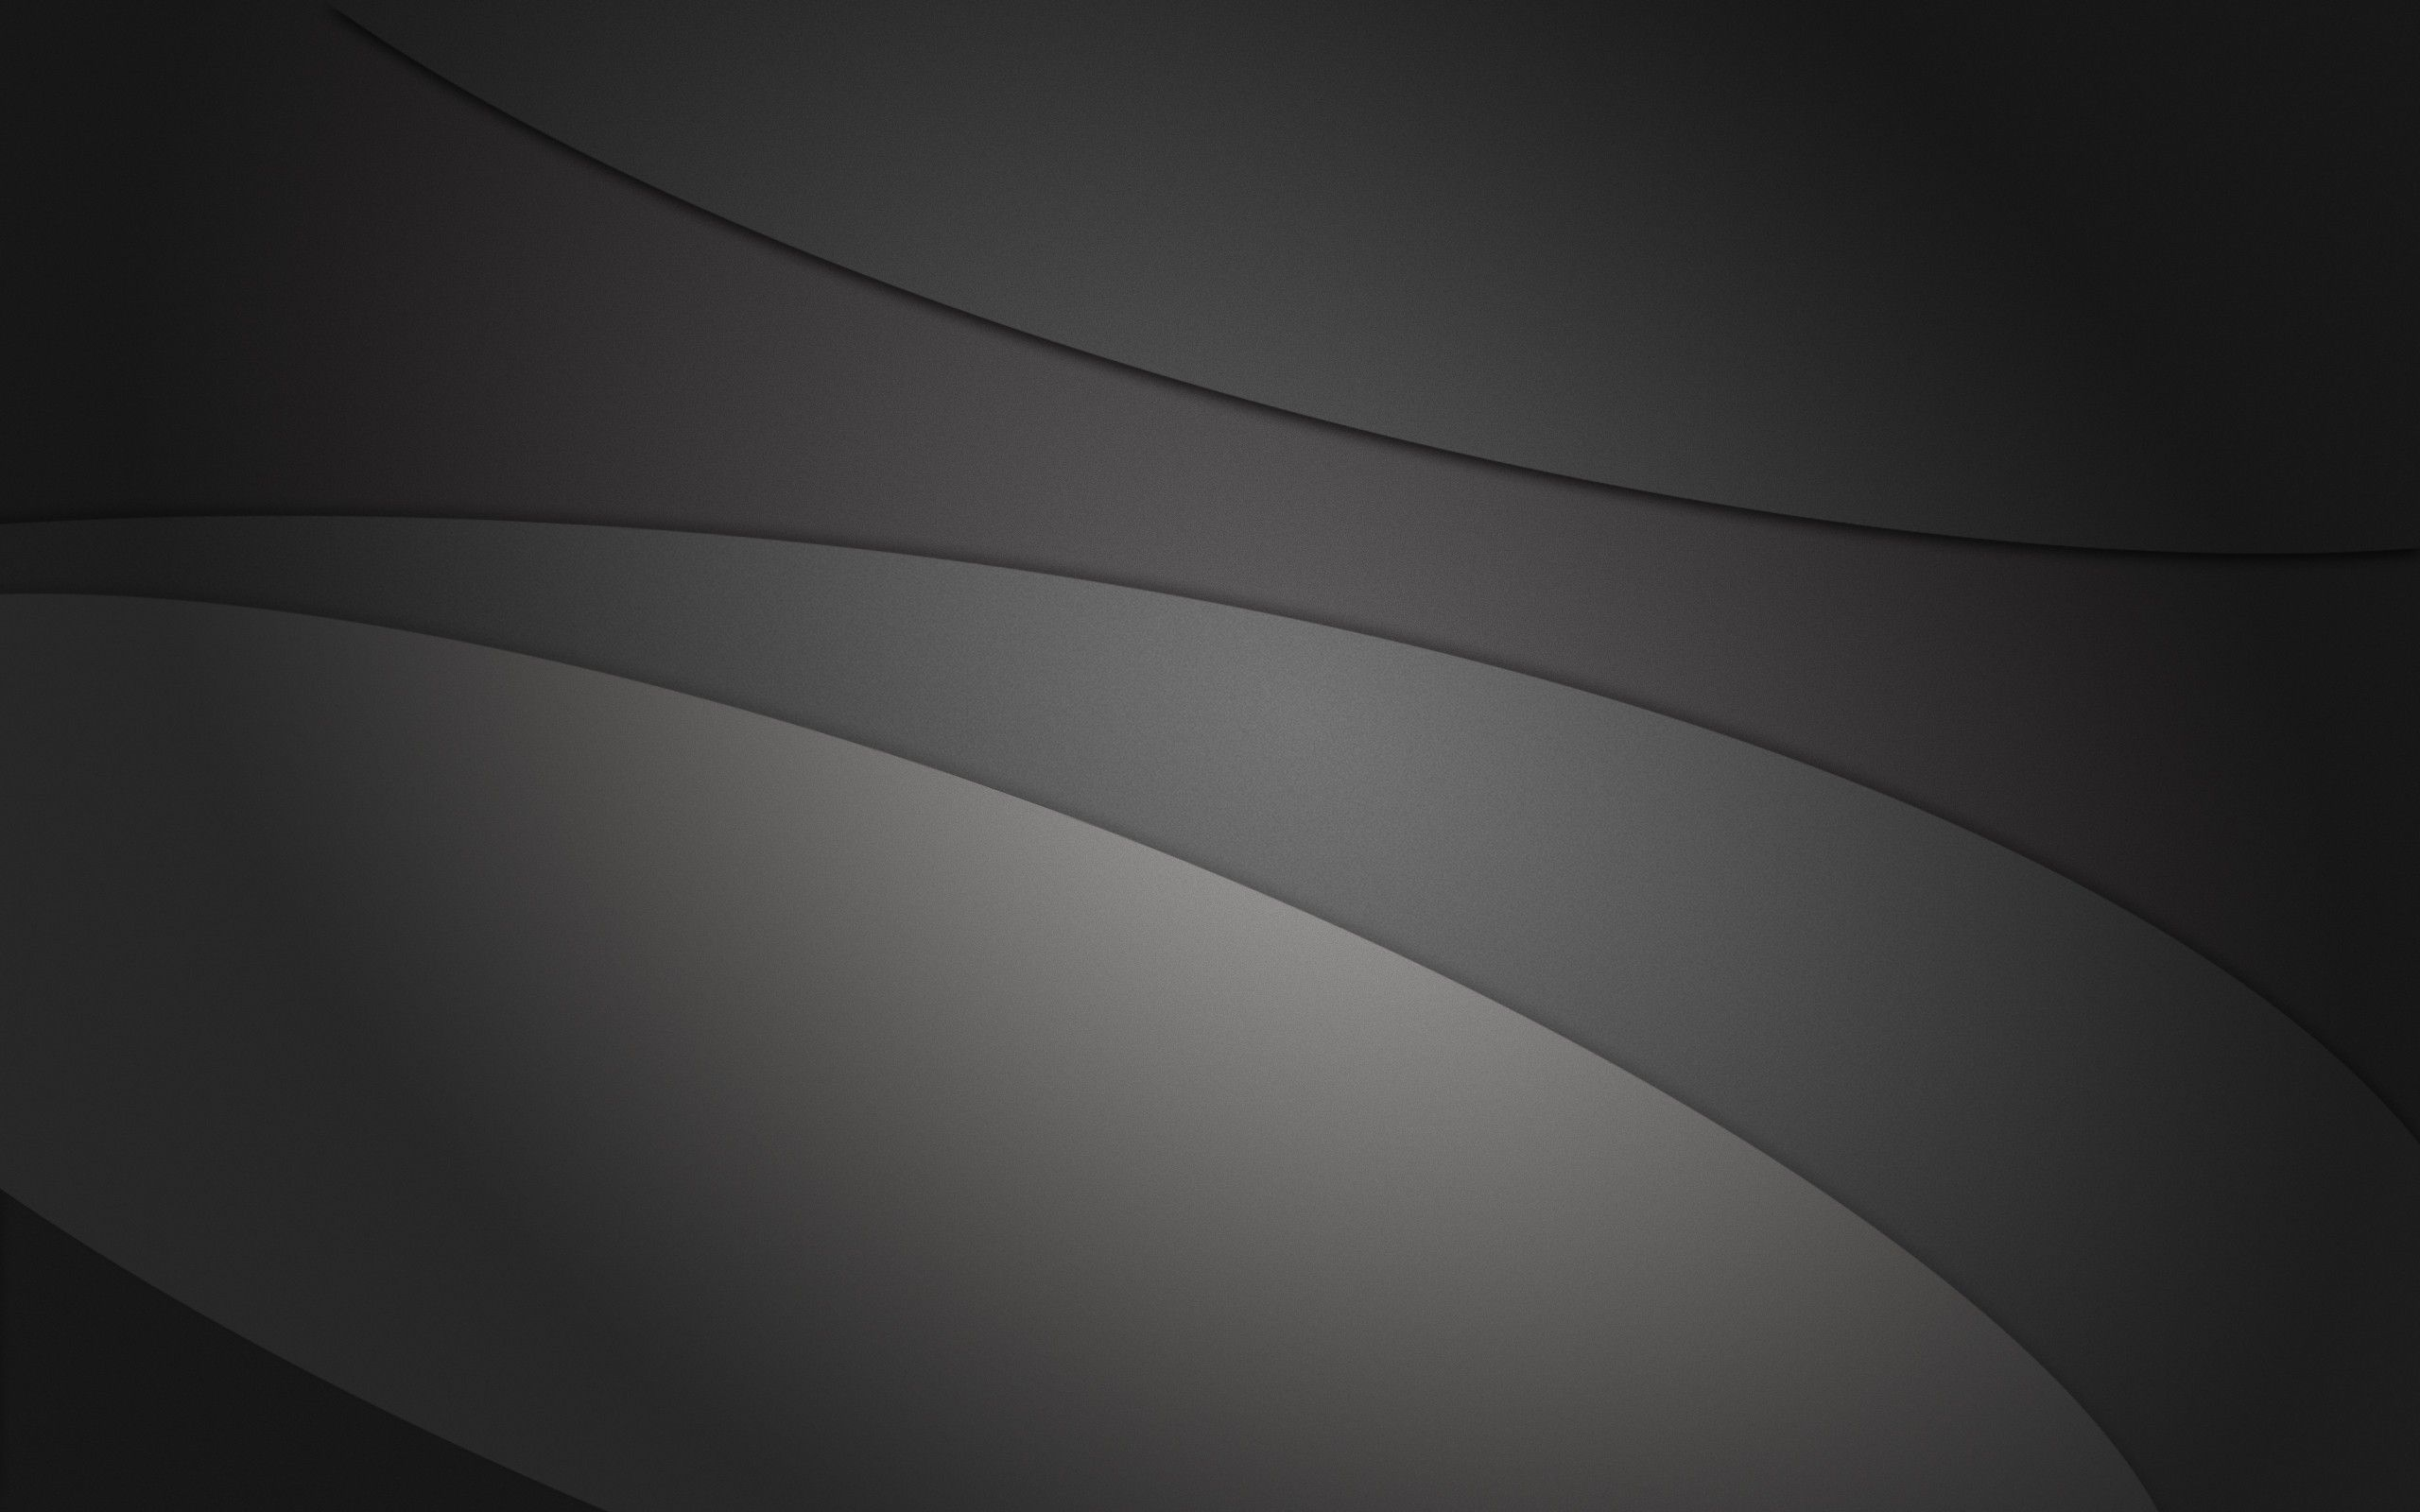 Unduh 900+ Wallpaper Abstract Grey HD Paling Baru